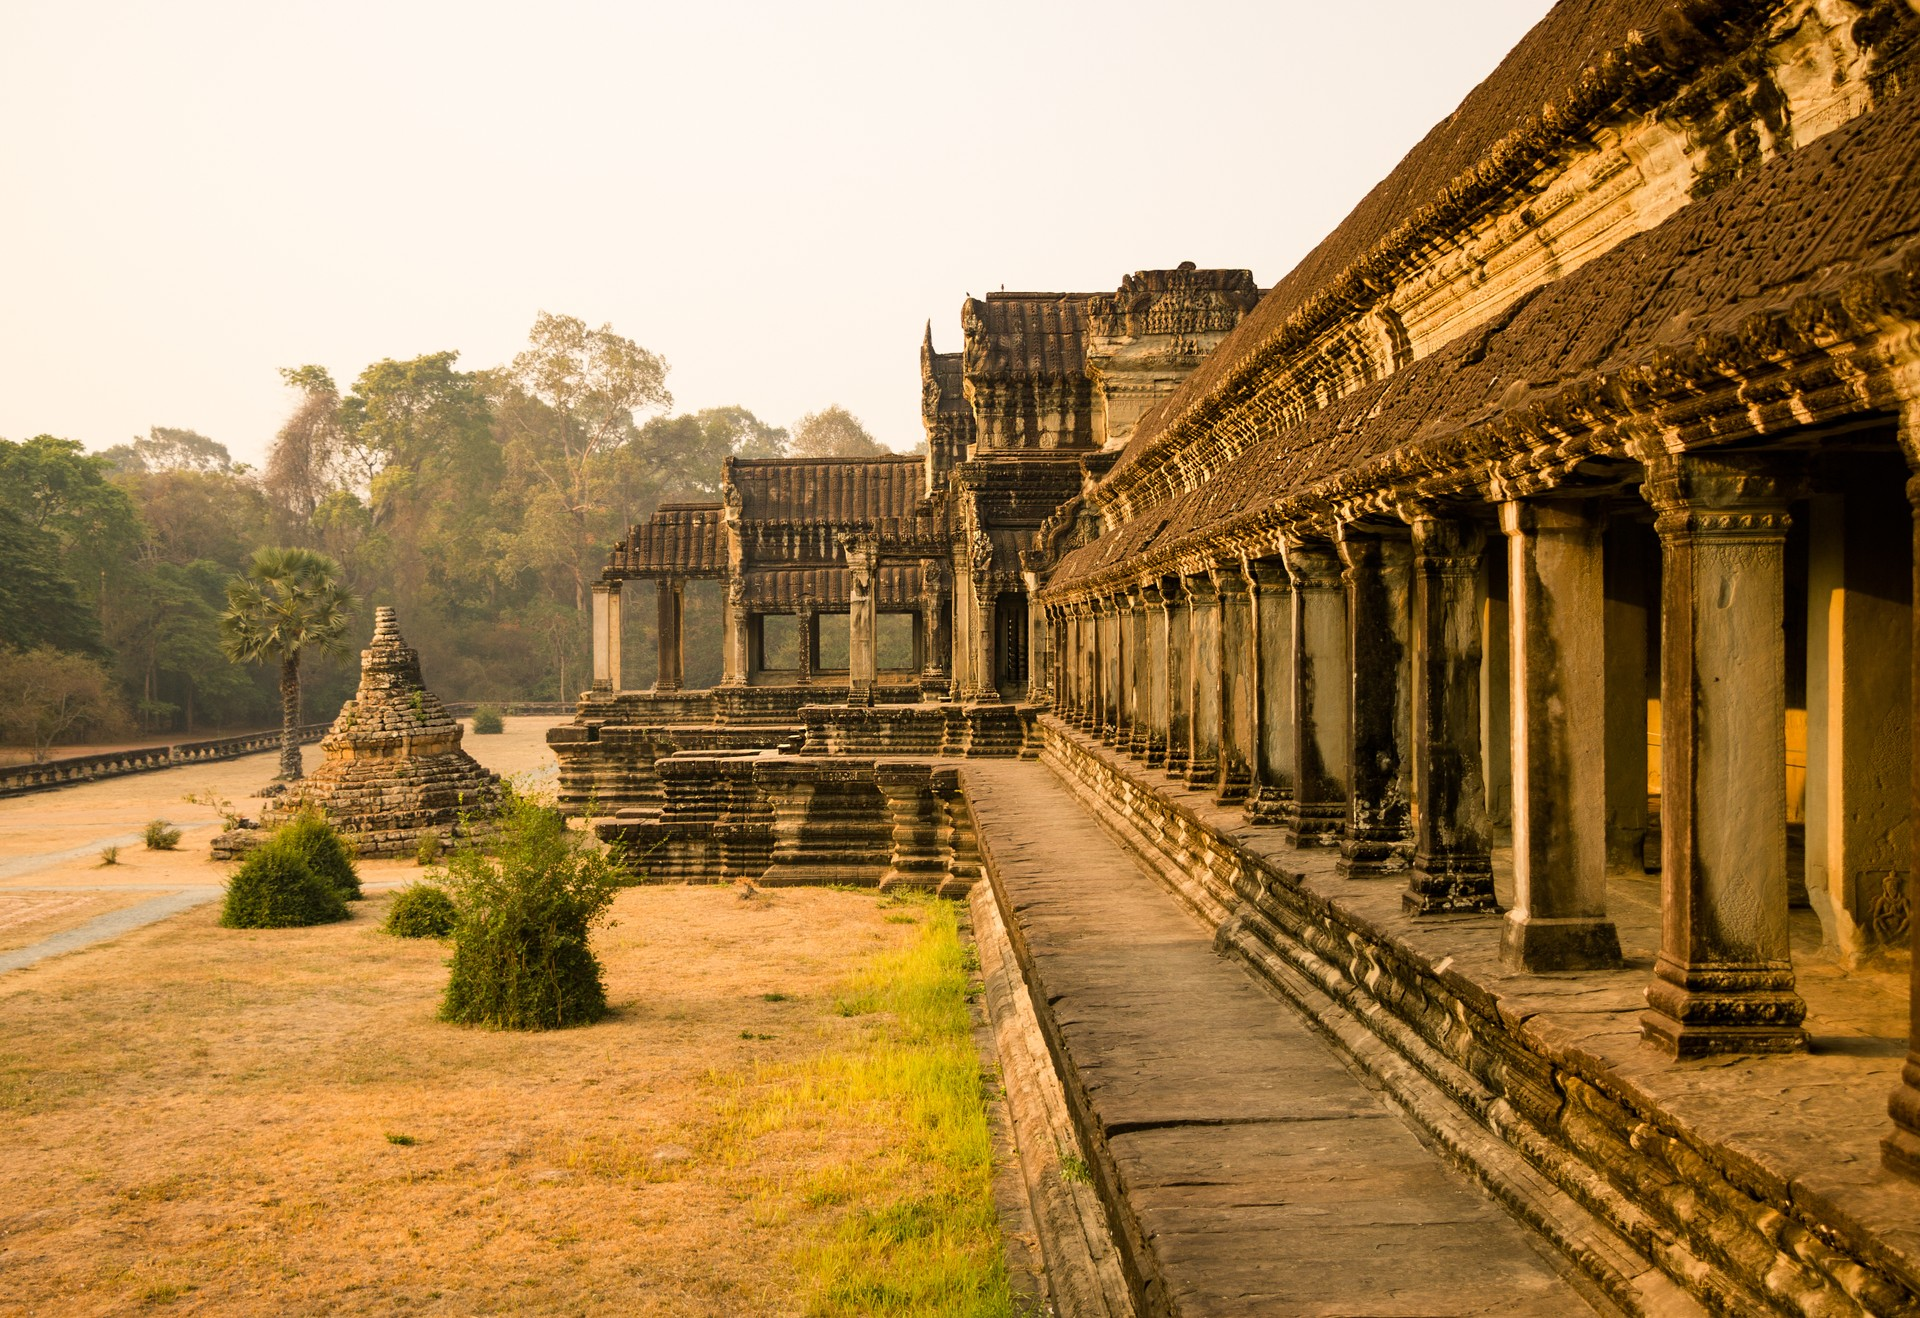 Sun rise at Angkor Wat temple in Siem Reap, Cambodia